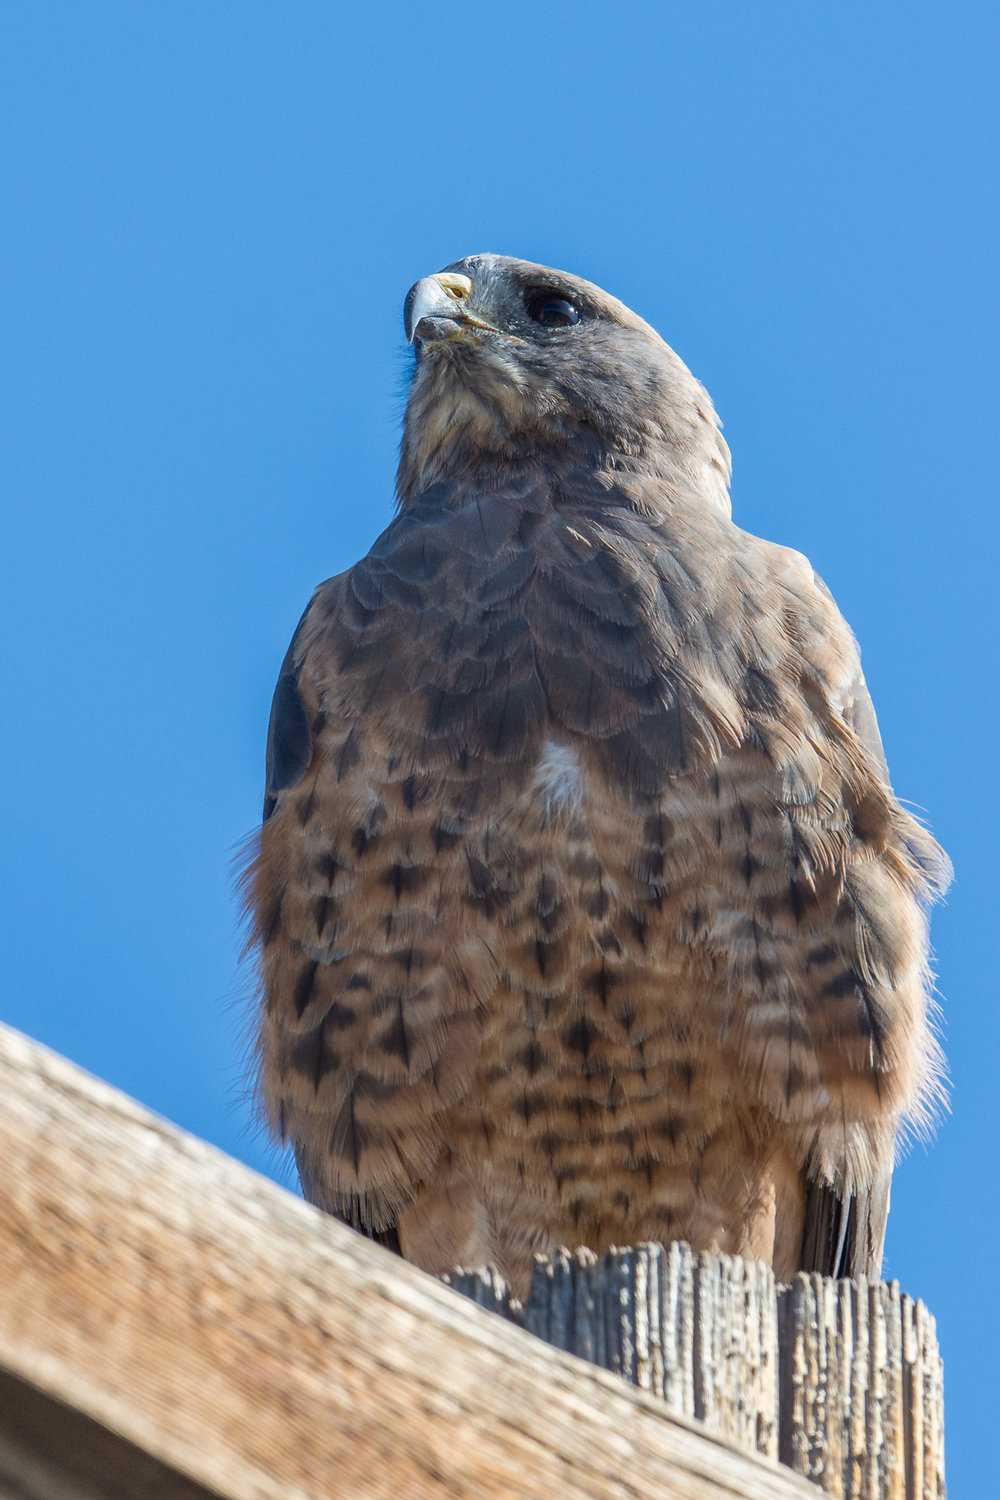 Swainson's Hawk (Buteo swainsoni), UNR AG Fields, WAS (NV), 09-12-2017  Swainson's Hawks have been nesting in the Reno area along the University of Reno Agricultural Fields.  Raptors love using the power line poles (D7200 with 500mm f/4 lens, 750mm focal length, 1/1250s, f/5.6, ISO250, +.3EV).